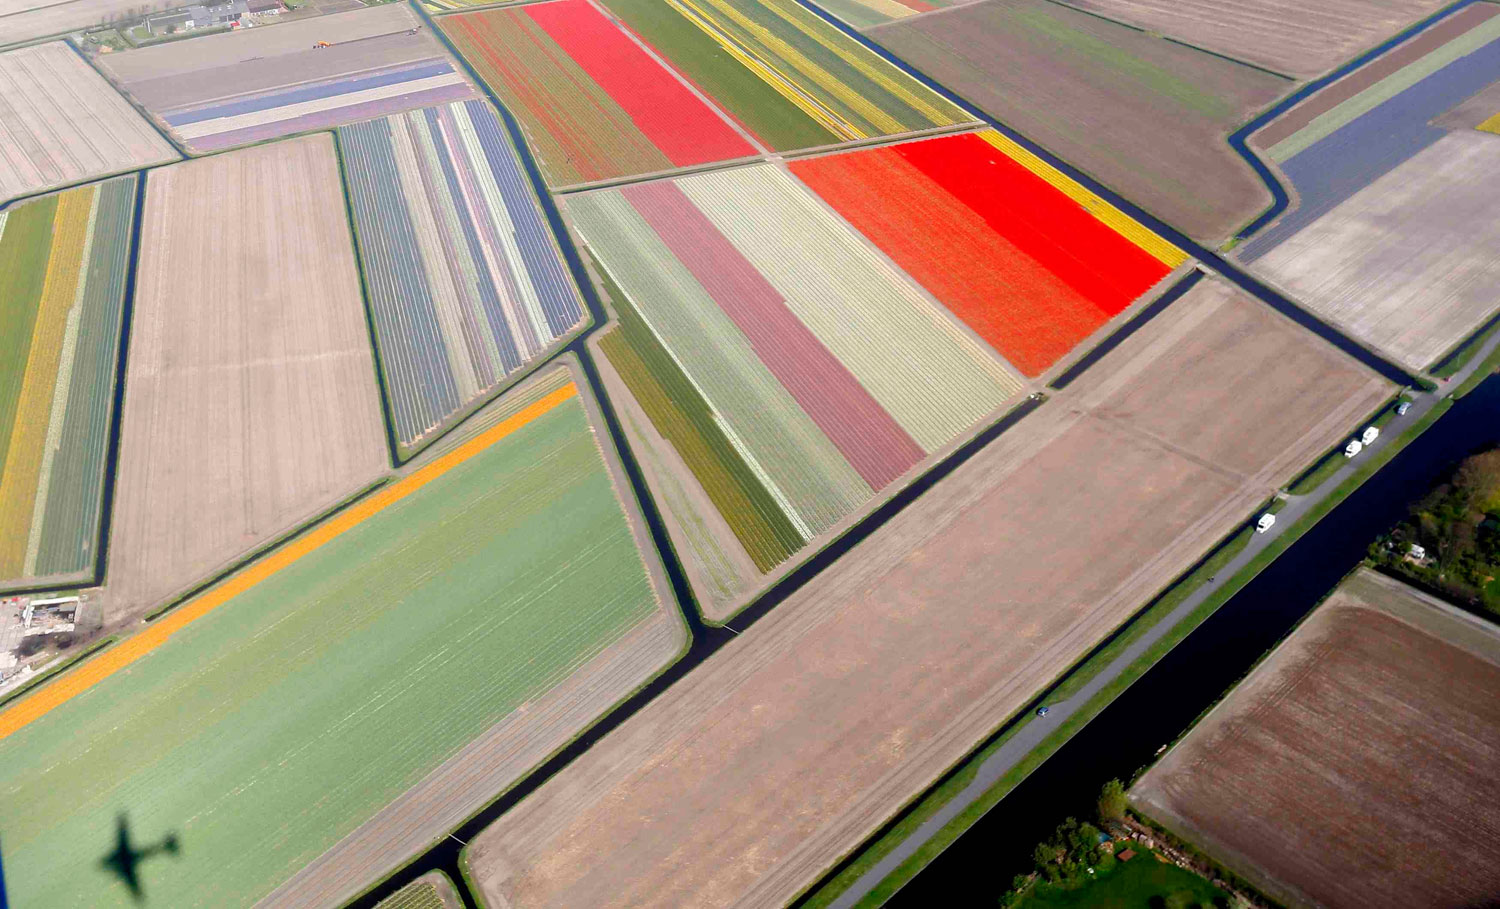 Aerial view of flower fields near the Keukenhof park, also known as the Garden of Europe, in Lisse, Netherlands, on April 9, 2014. Keukenhof, employing some 30 gardeners, is considered to be the world's largest flower garden displaying millions of flowers every year.